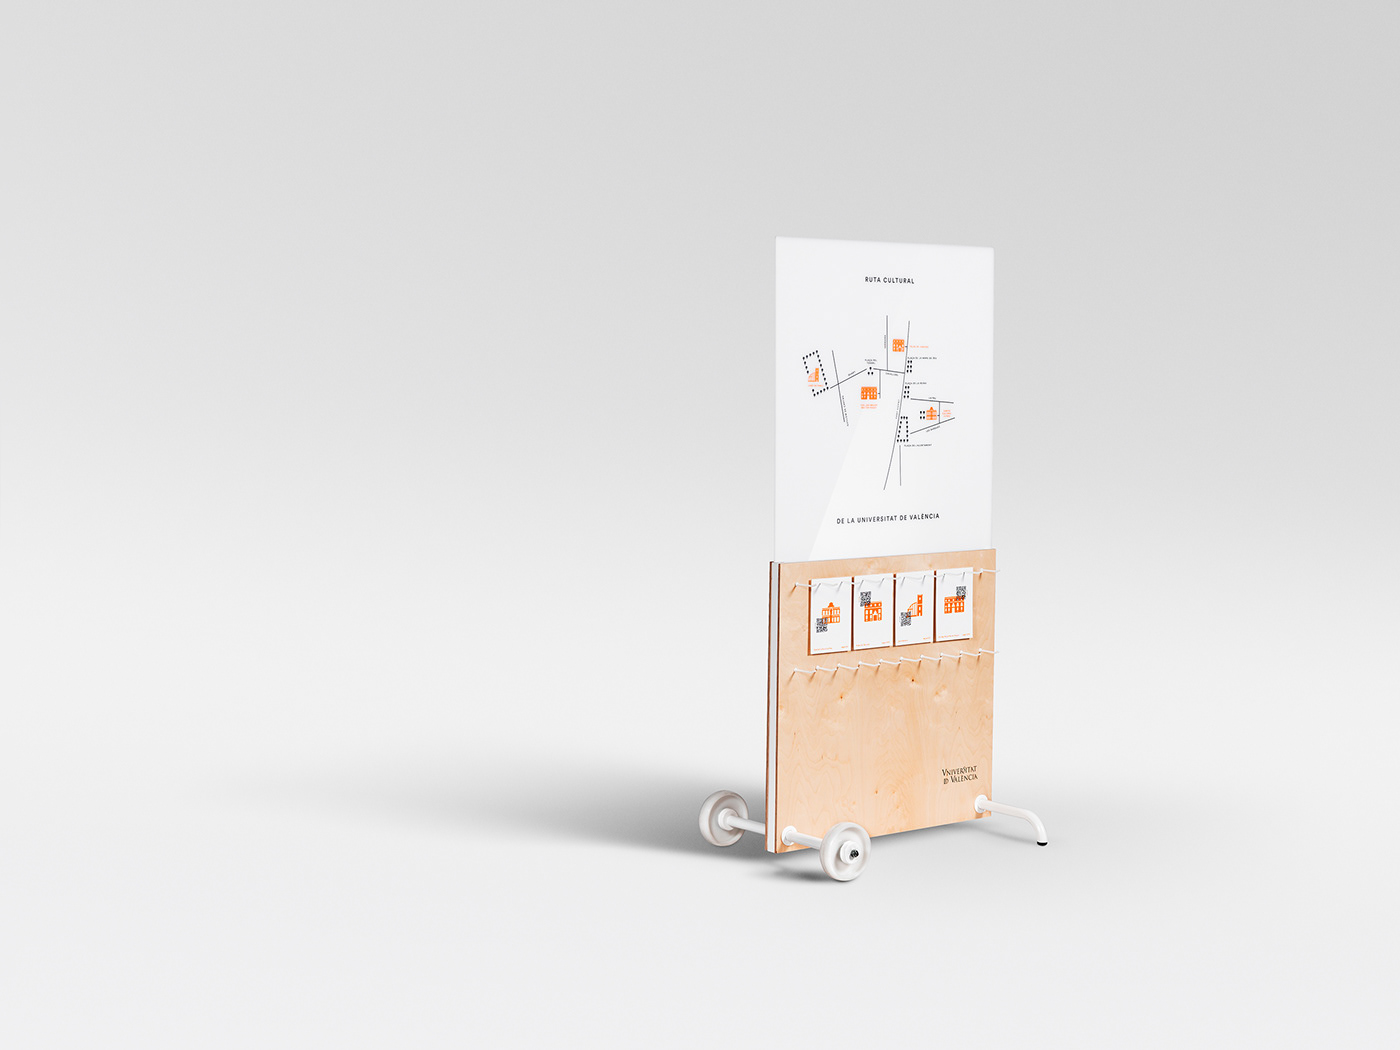 architecture graphic graphicdesign Icon information panel poster product productdesign